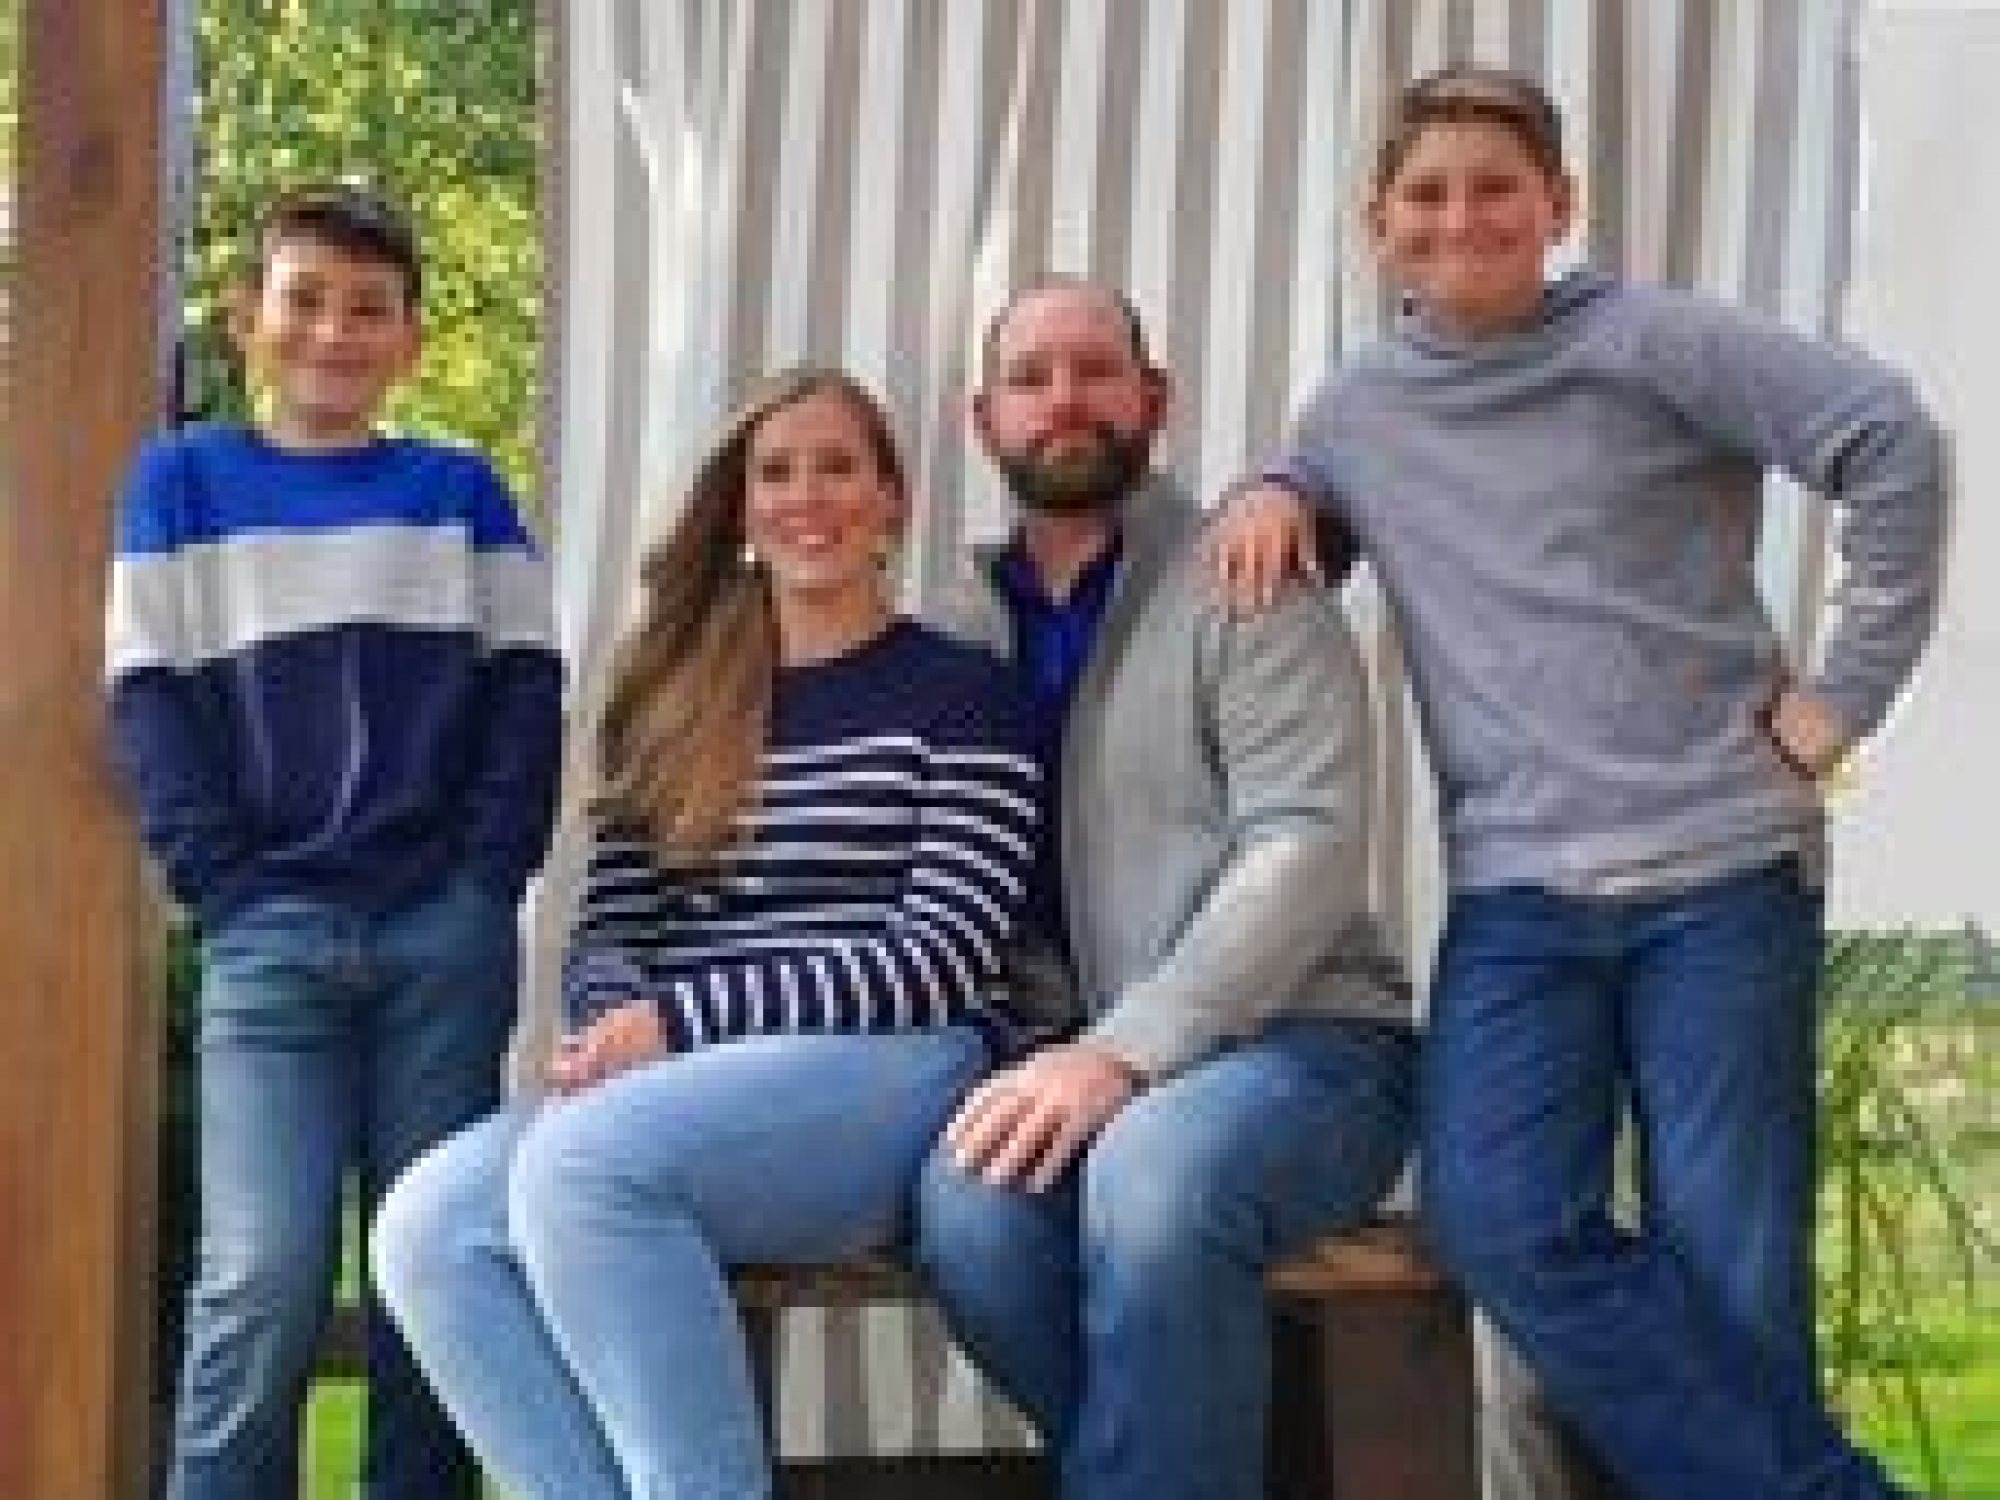 The Baum Family (Logan, Shannon, Chris, and Mason)